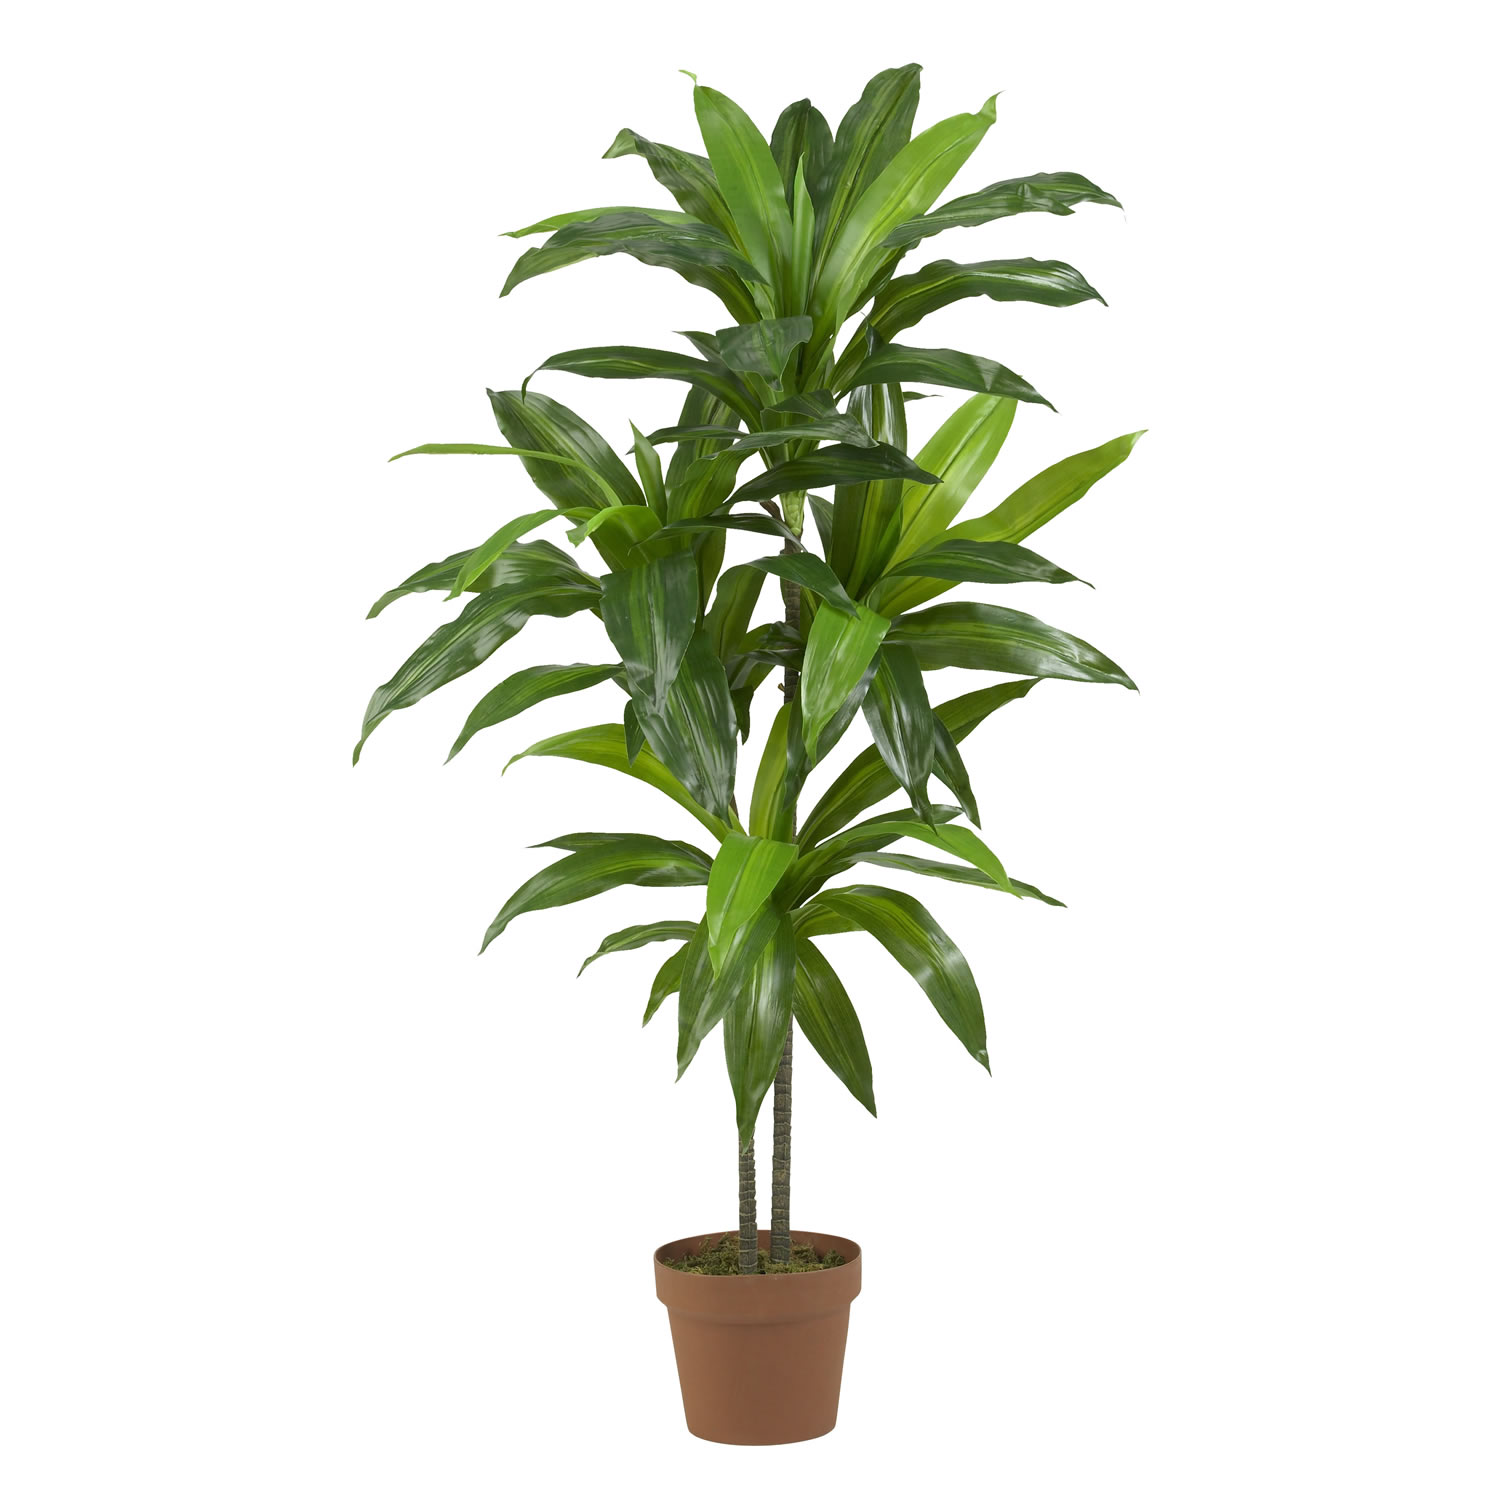 Tall Indoor Plants With Big Leaves Seahorse And Stripes Kelis Top 5 House Plants